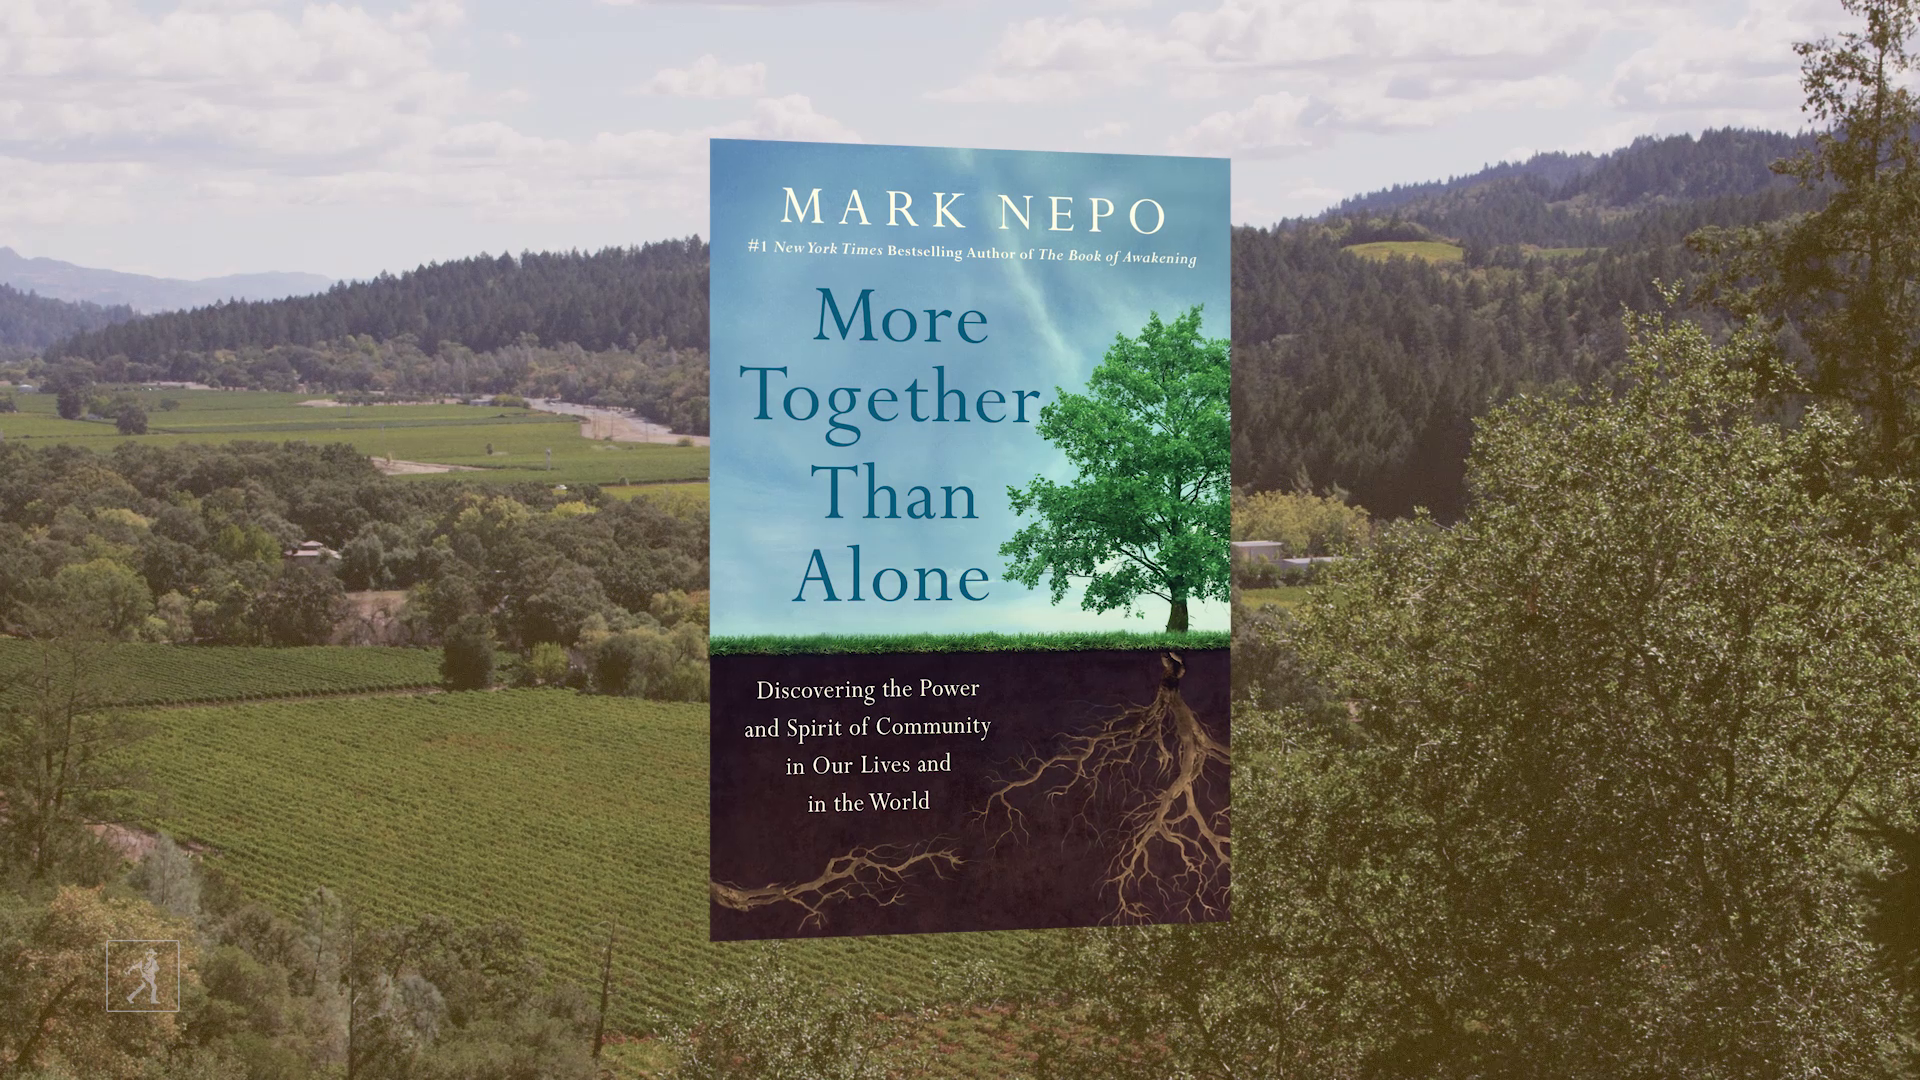 Mark Nepo Explores The Power Of Community